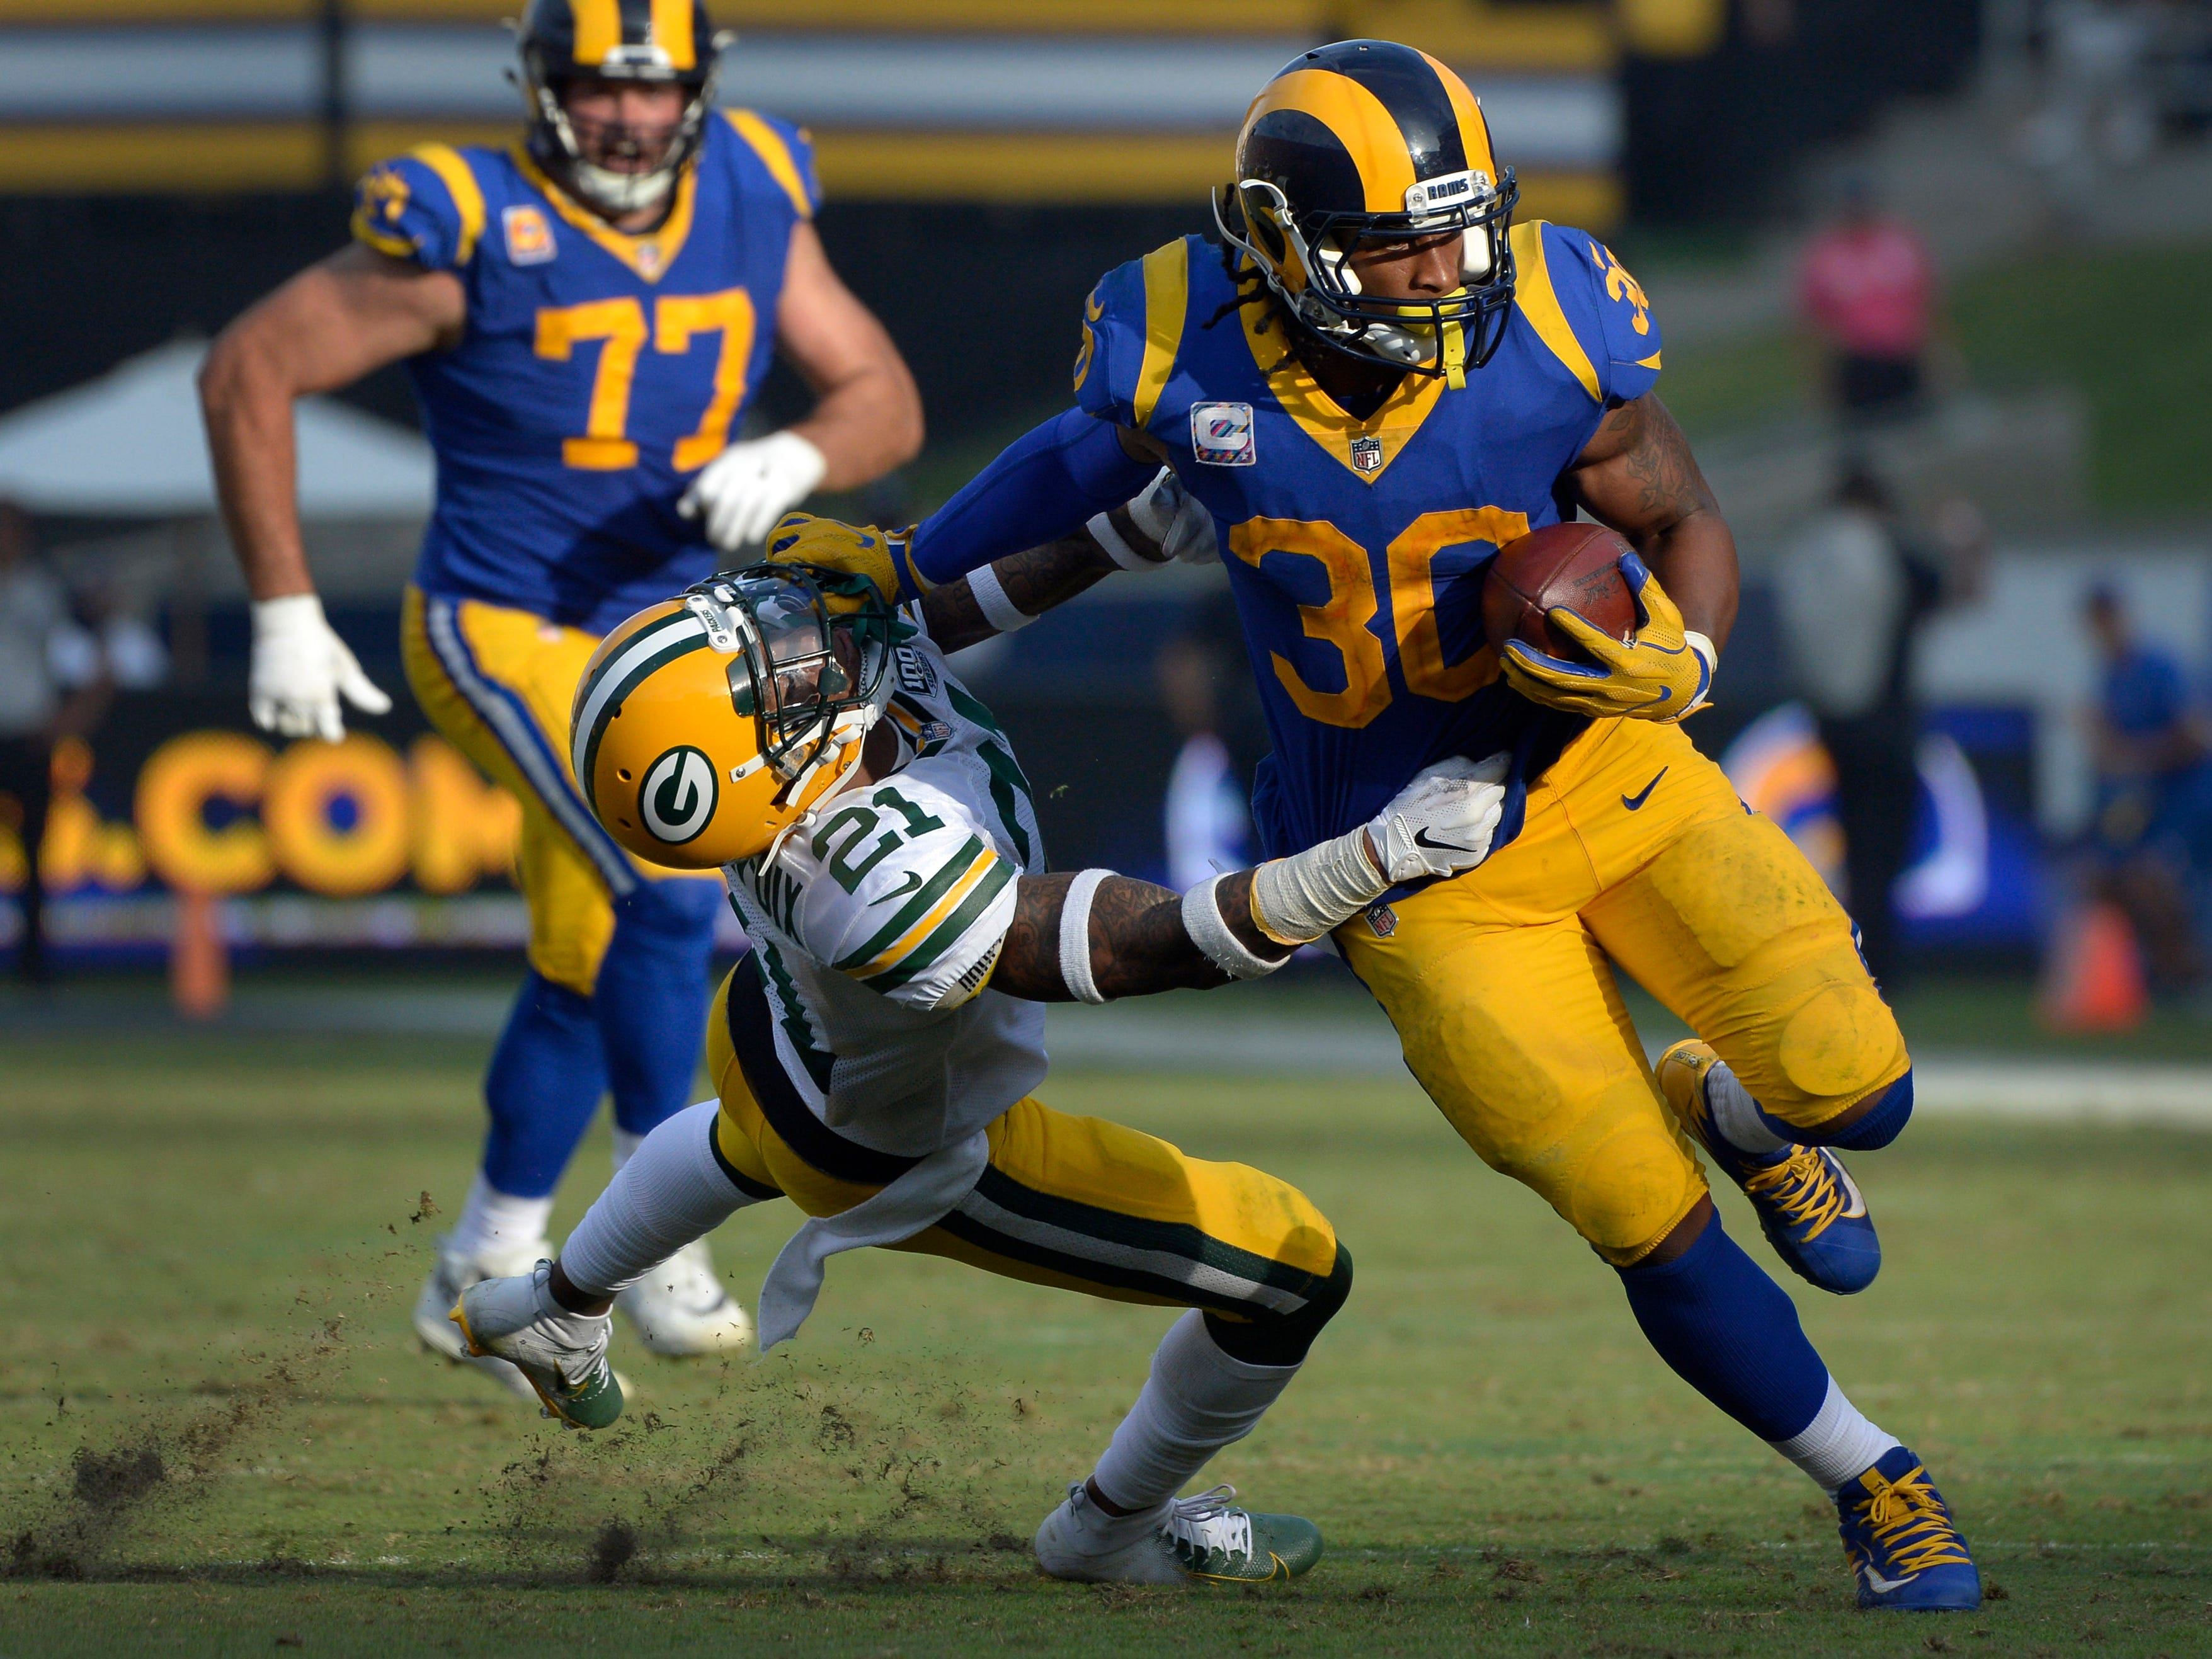 Week 8: Los Angeles Rams running back Todd Gurley stiff arms Green Bay Packers free safety Ha Ha Clinton-Dix on a fourth quarter run at Los Angeles Memorial Coliseum. The Rams won the game, 29-27.